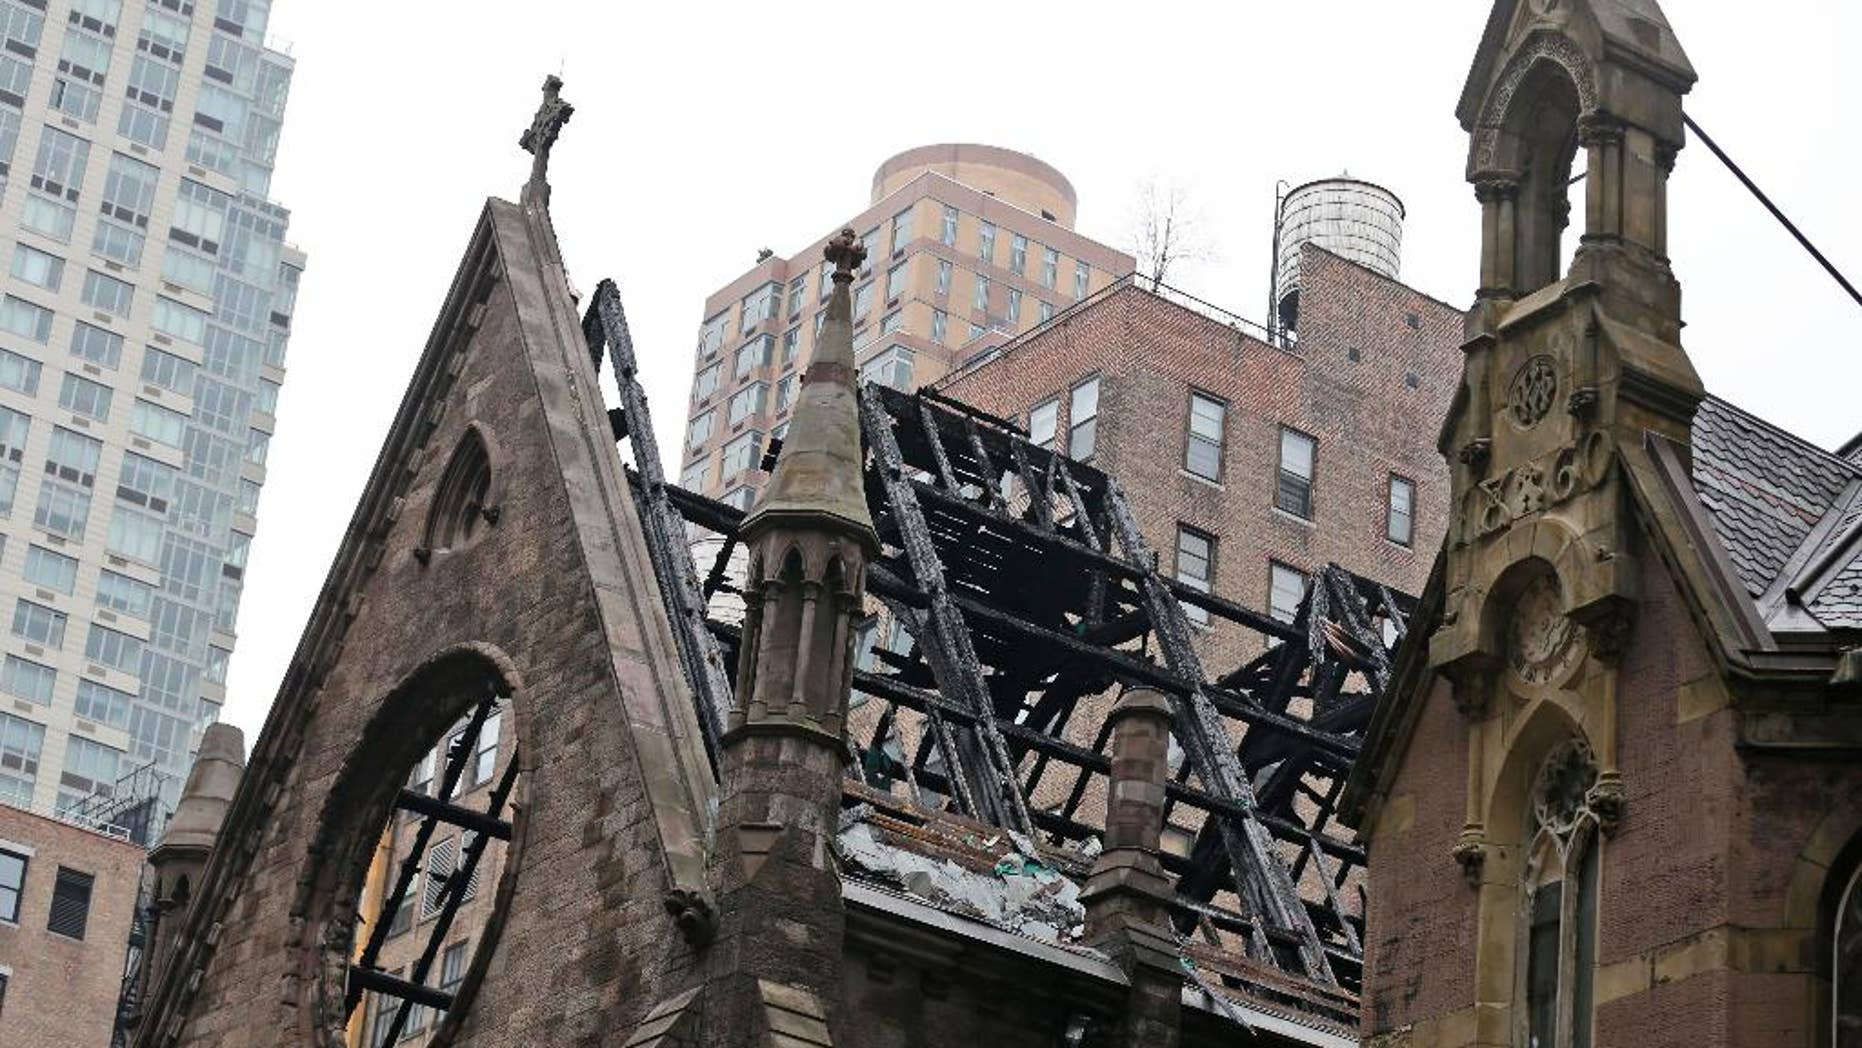 The remains of the Serbian Orthodox Cathedral of St. Sava are seen in New York, Monday, May 2, 2016. The historic church in New York City was destroyed in a raging fire Sunday just hours after its Orthodox worshippers celebrated Easter. Authorities reported one minor injury in the blaze. (AP Photo/Seth Wenig)